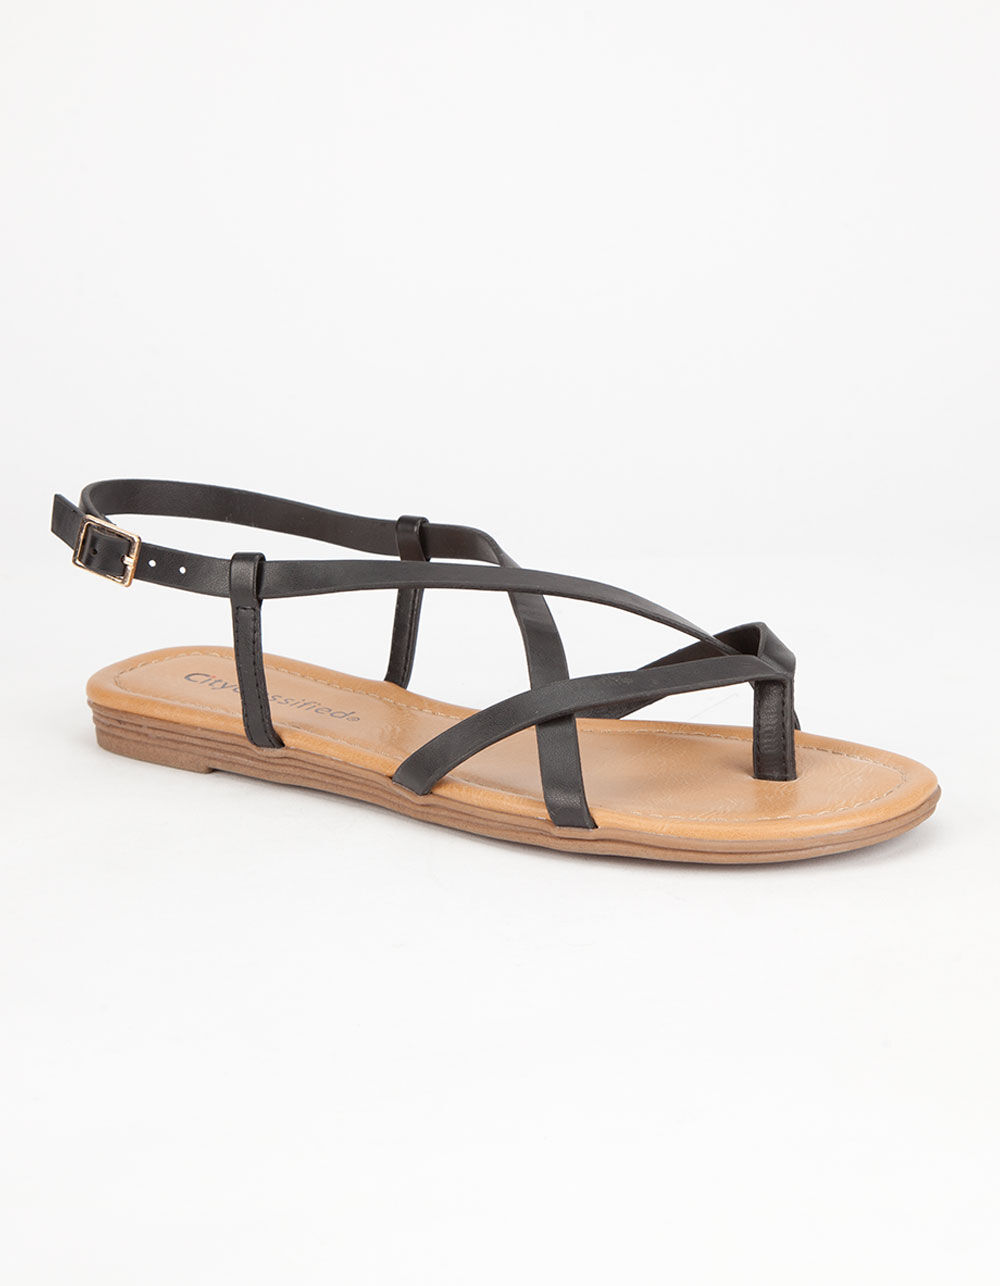 CITY CLASSIFIED Spica Sandals